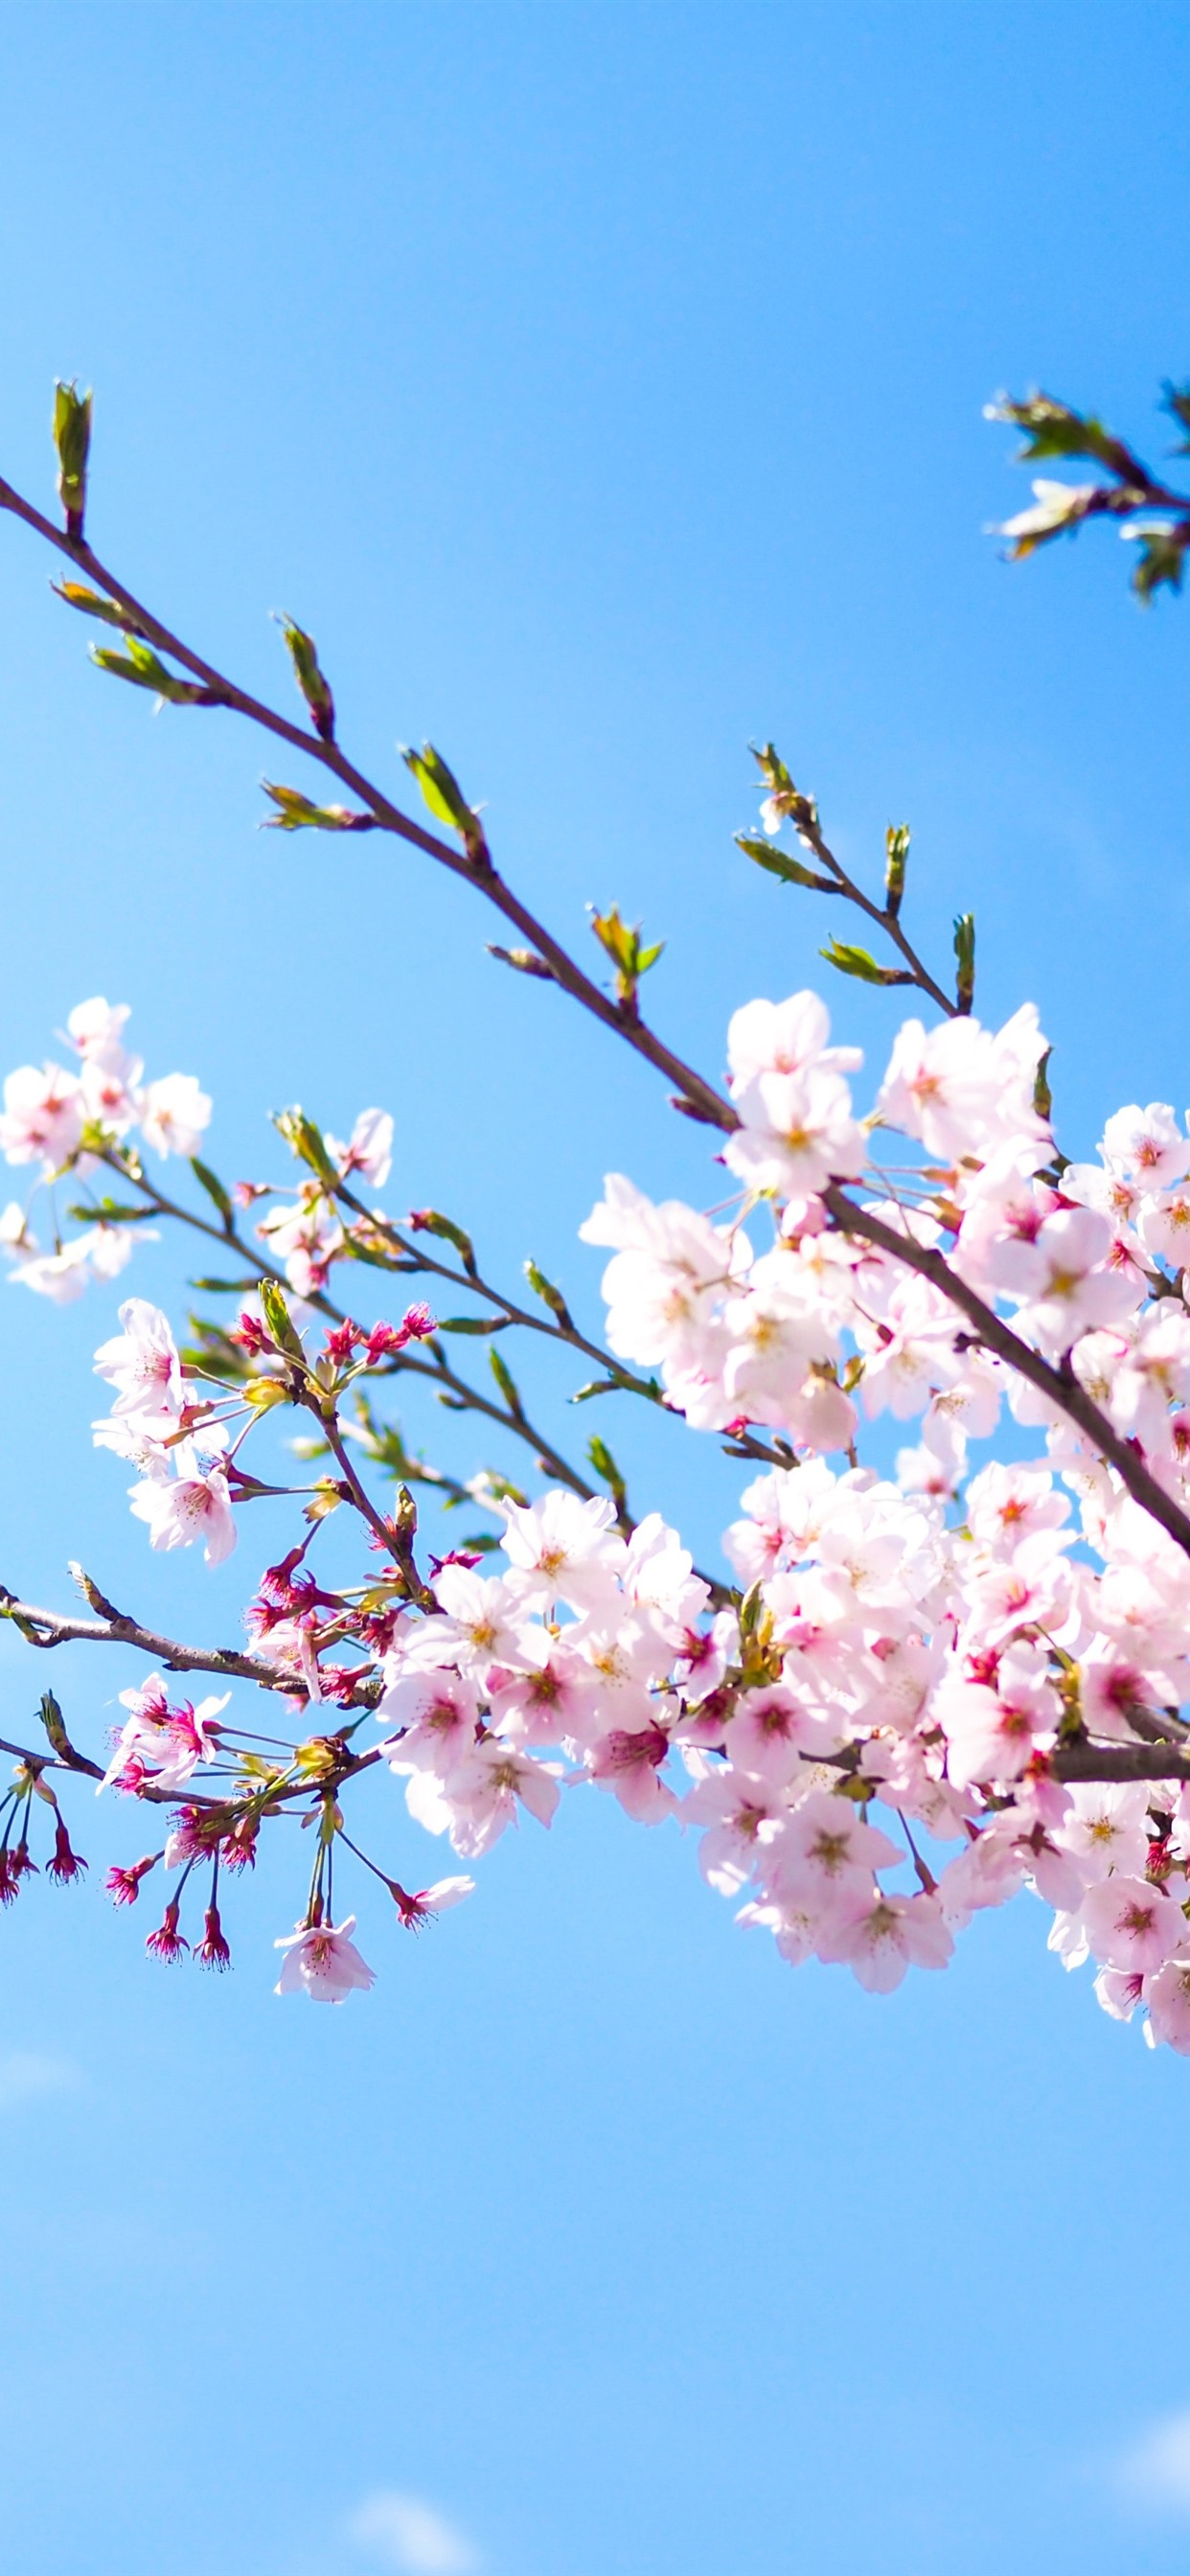 Wallpaper Pink Sakura Bloom Blue Sky Spring 3840x2160 Uhd